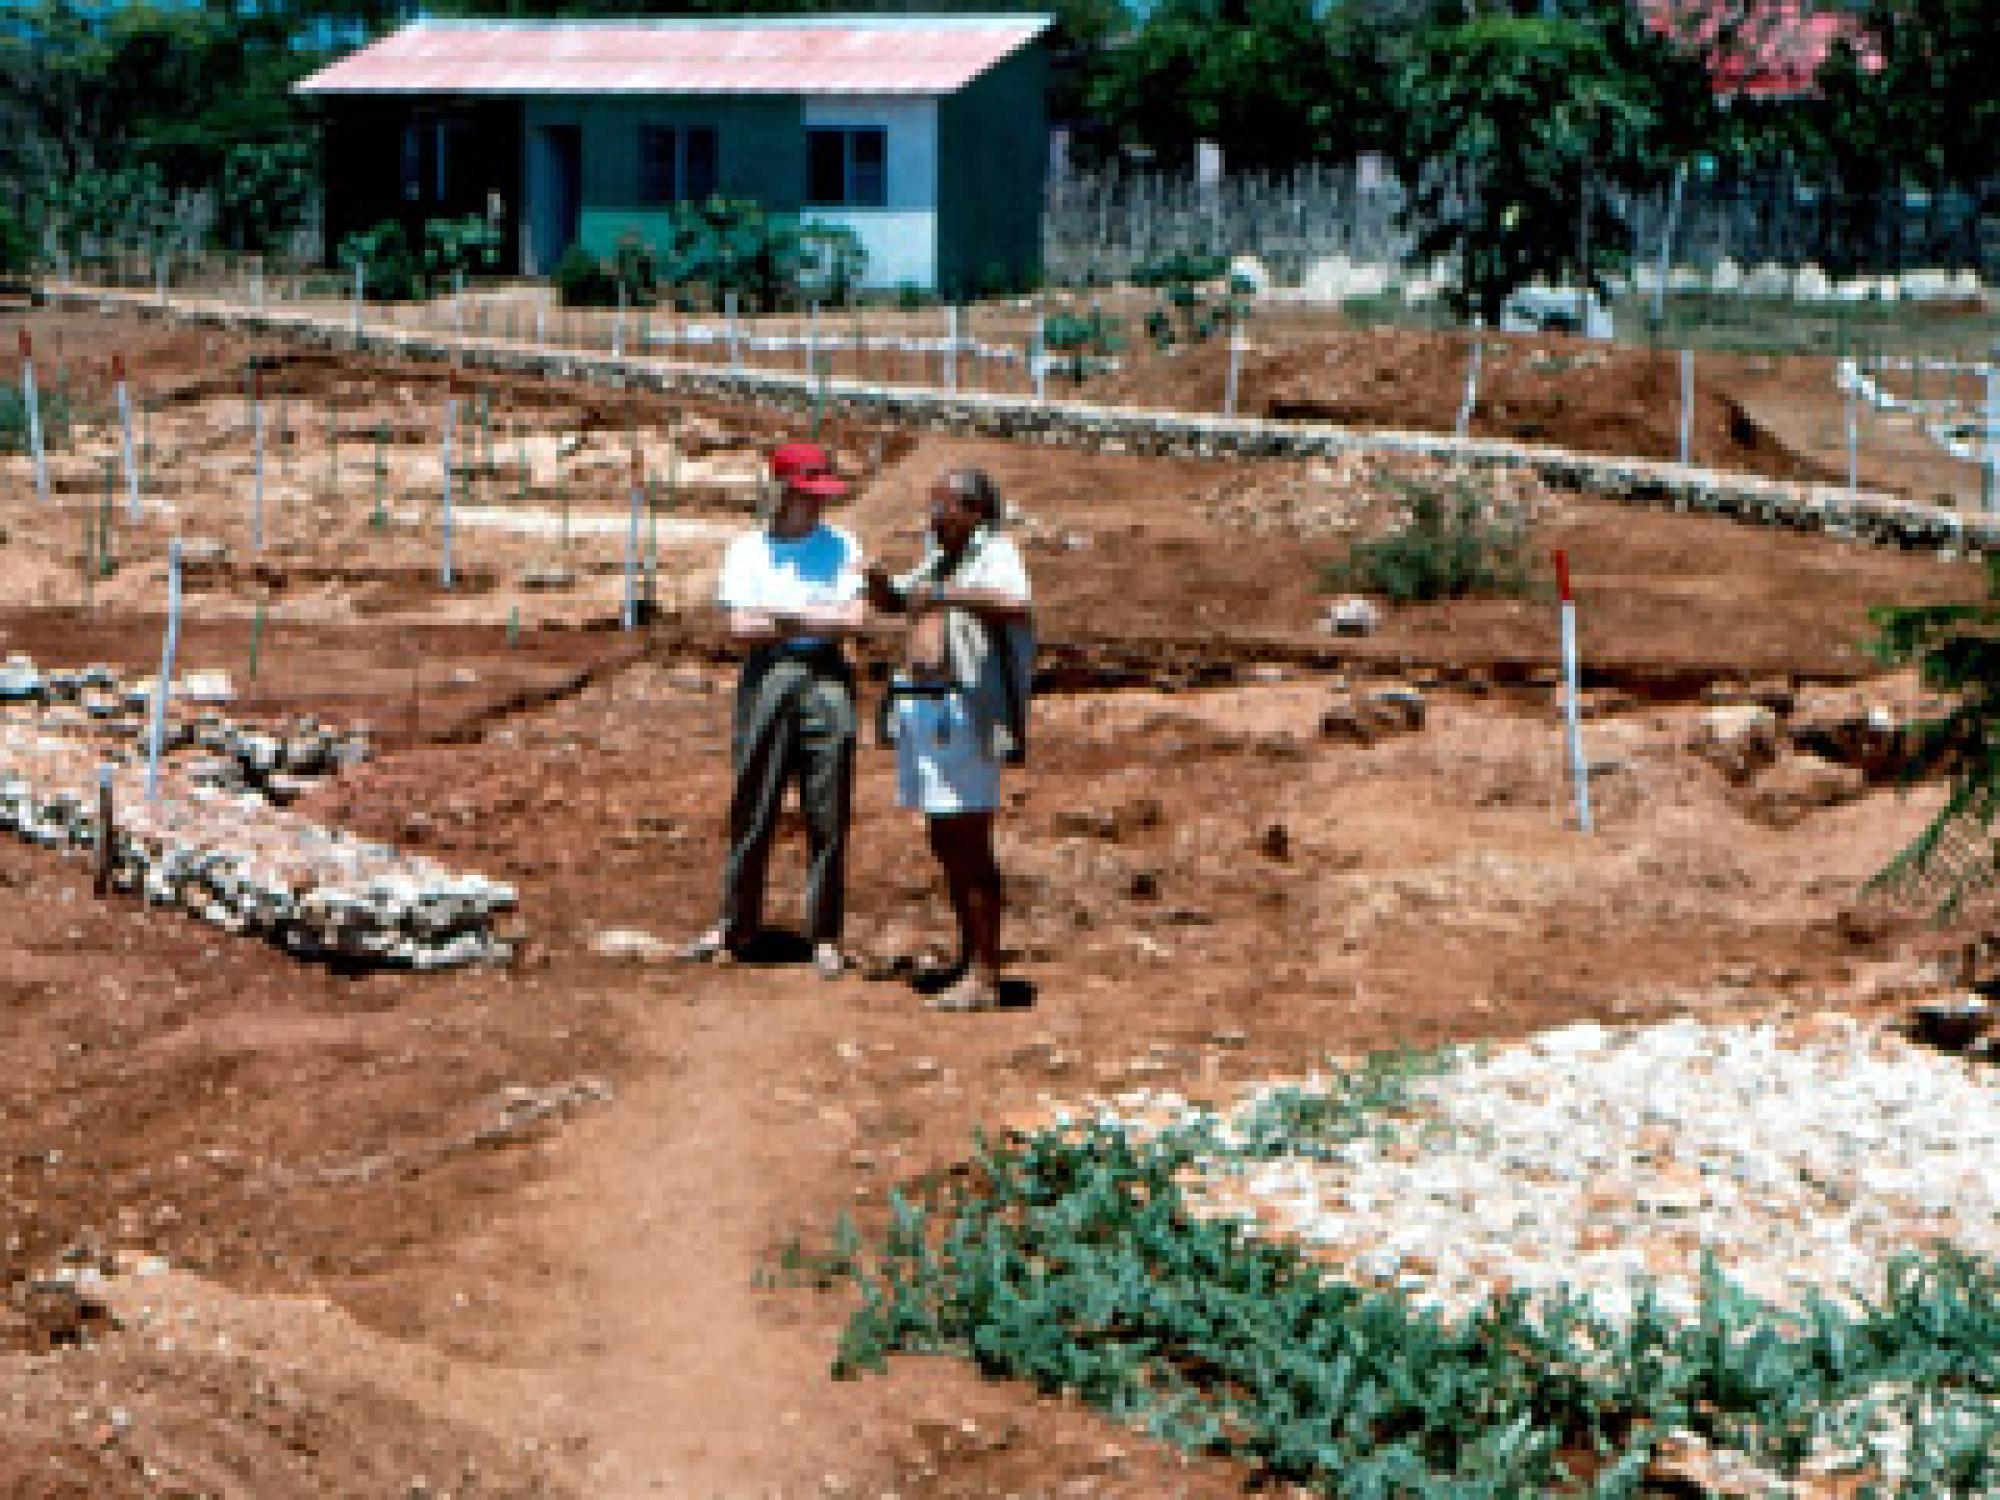 Co-authors Kathleen Deagan and Jose M. Cruxent standing by the foundations of La Isabela's storehouse, where metallurgical activities took place. Photo: Copyright 1998. James Quine, Florida Museum of Natural History, University of Florida.